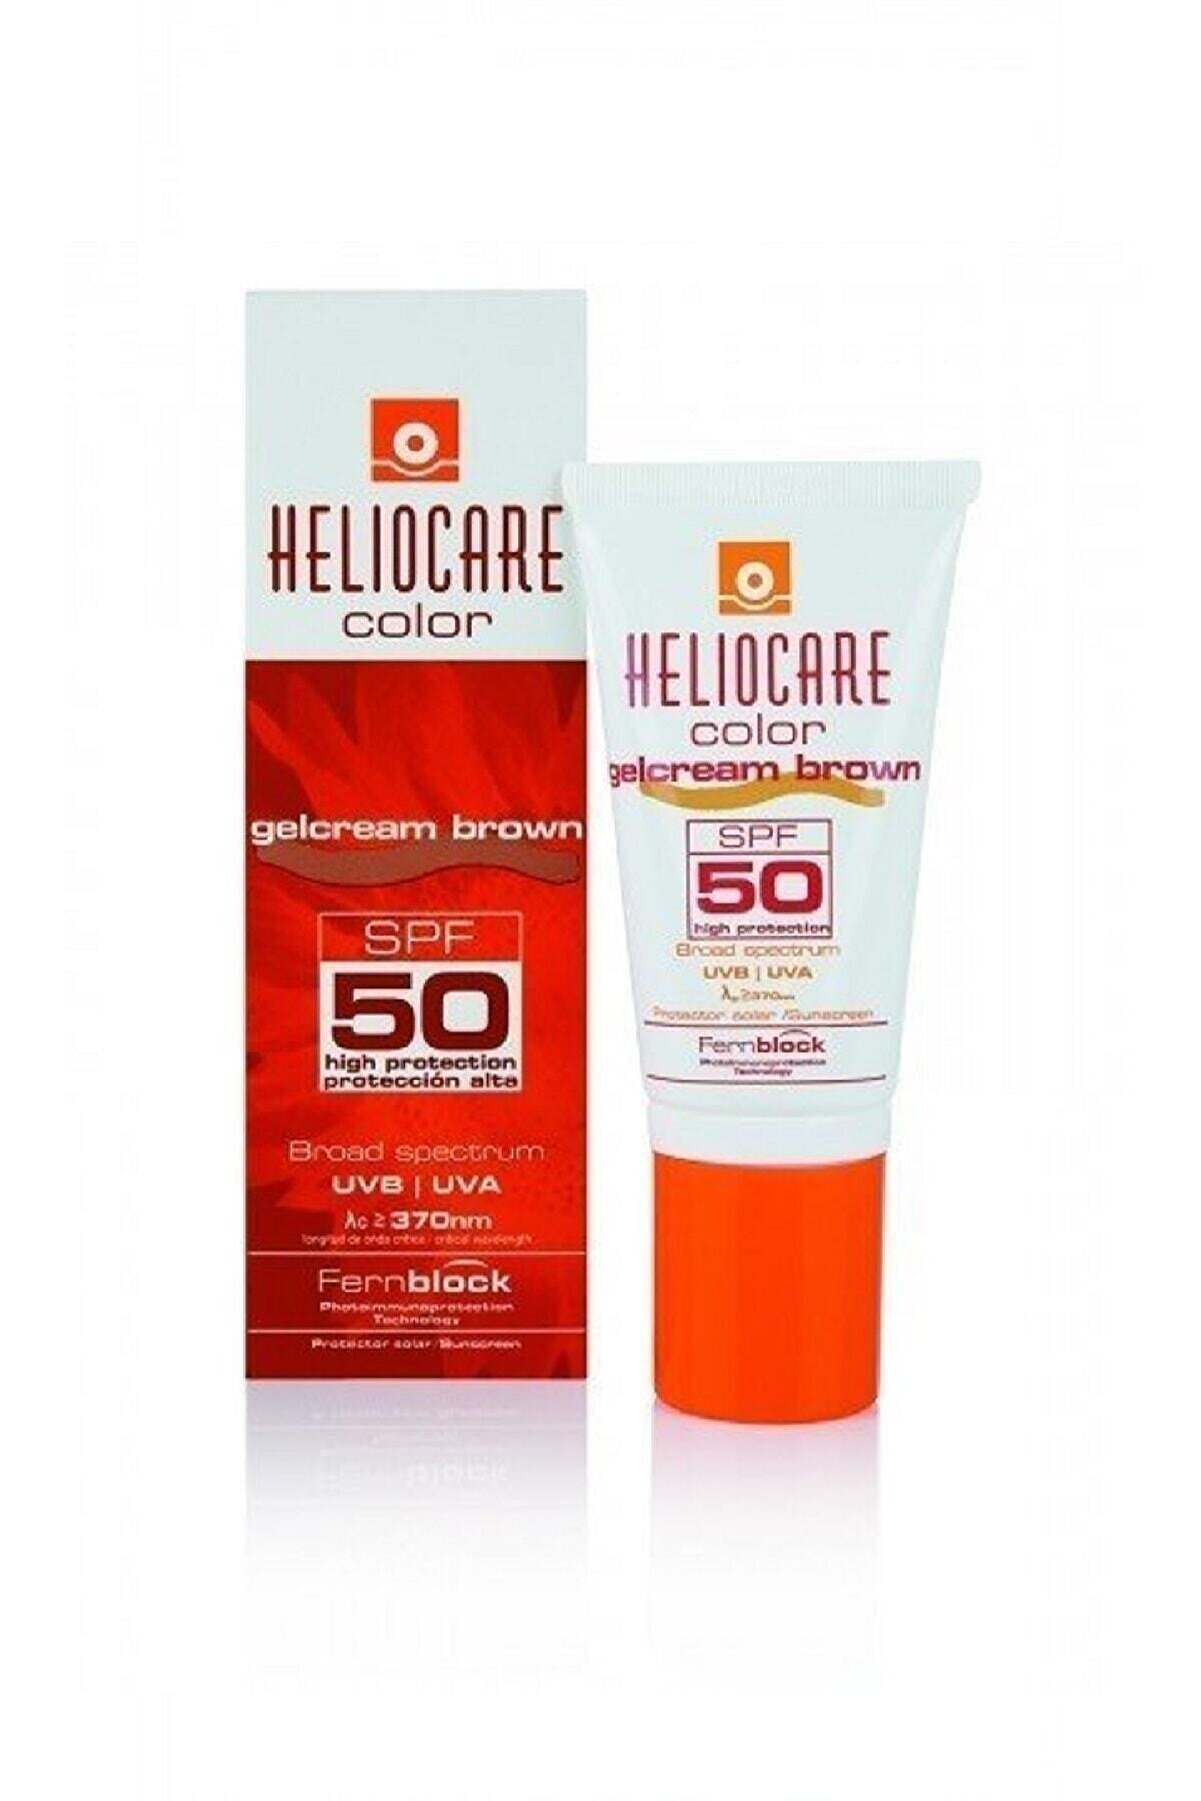 Heliocare Color Spf50 Gelcream Brown 50 ml